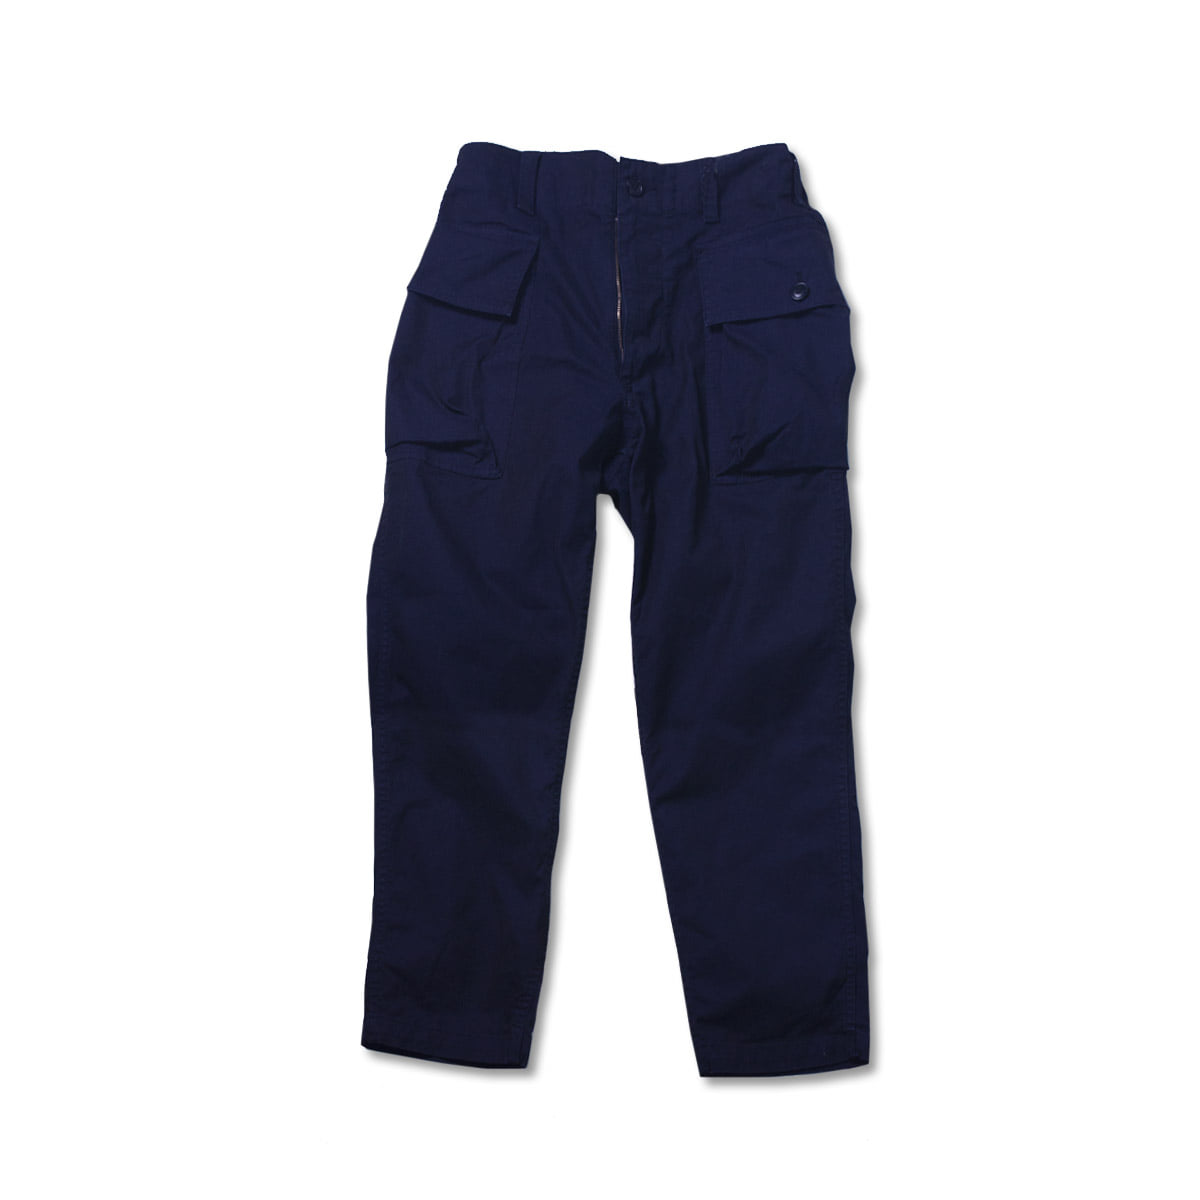 [SAGE DE CRET] TWILL COTTON CARGO PANTS 'NAVY'